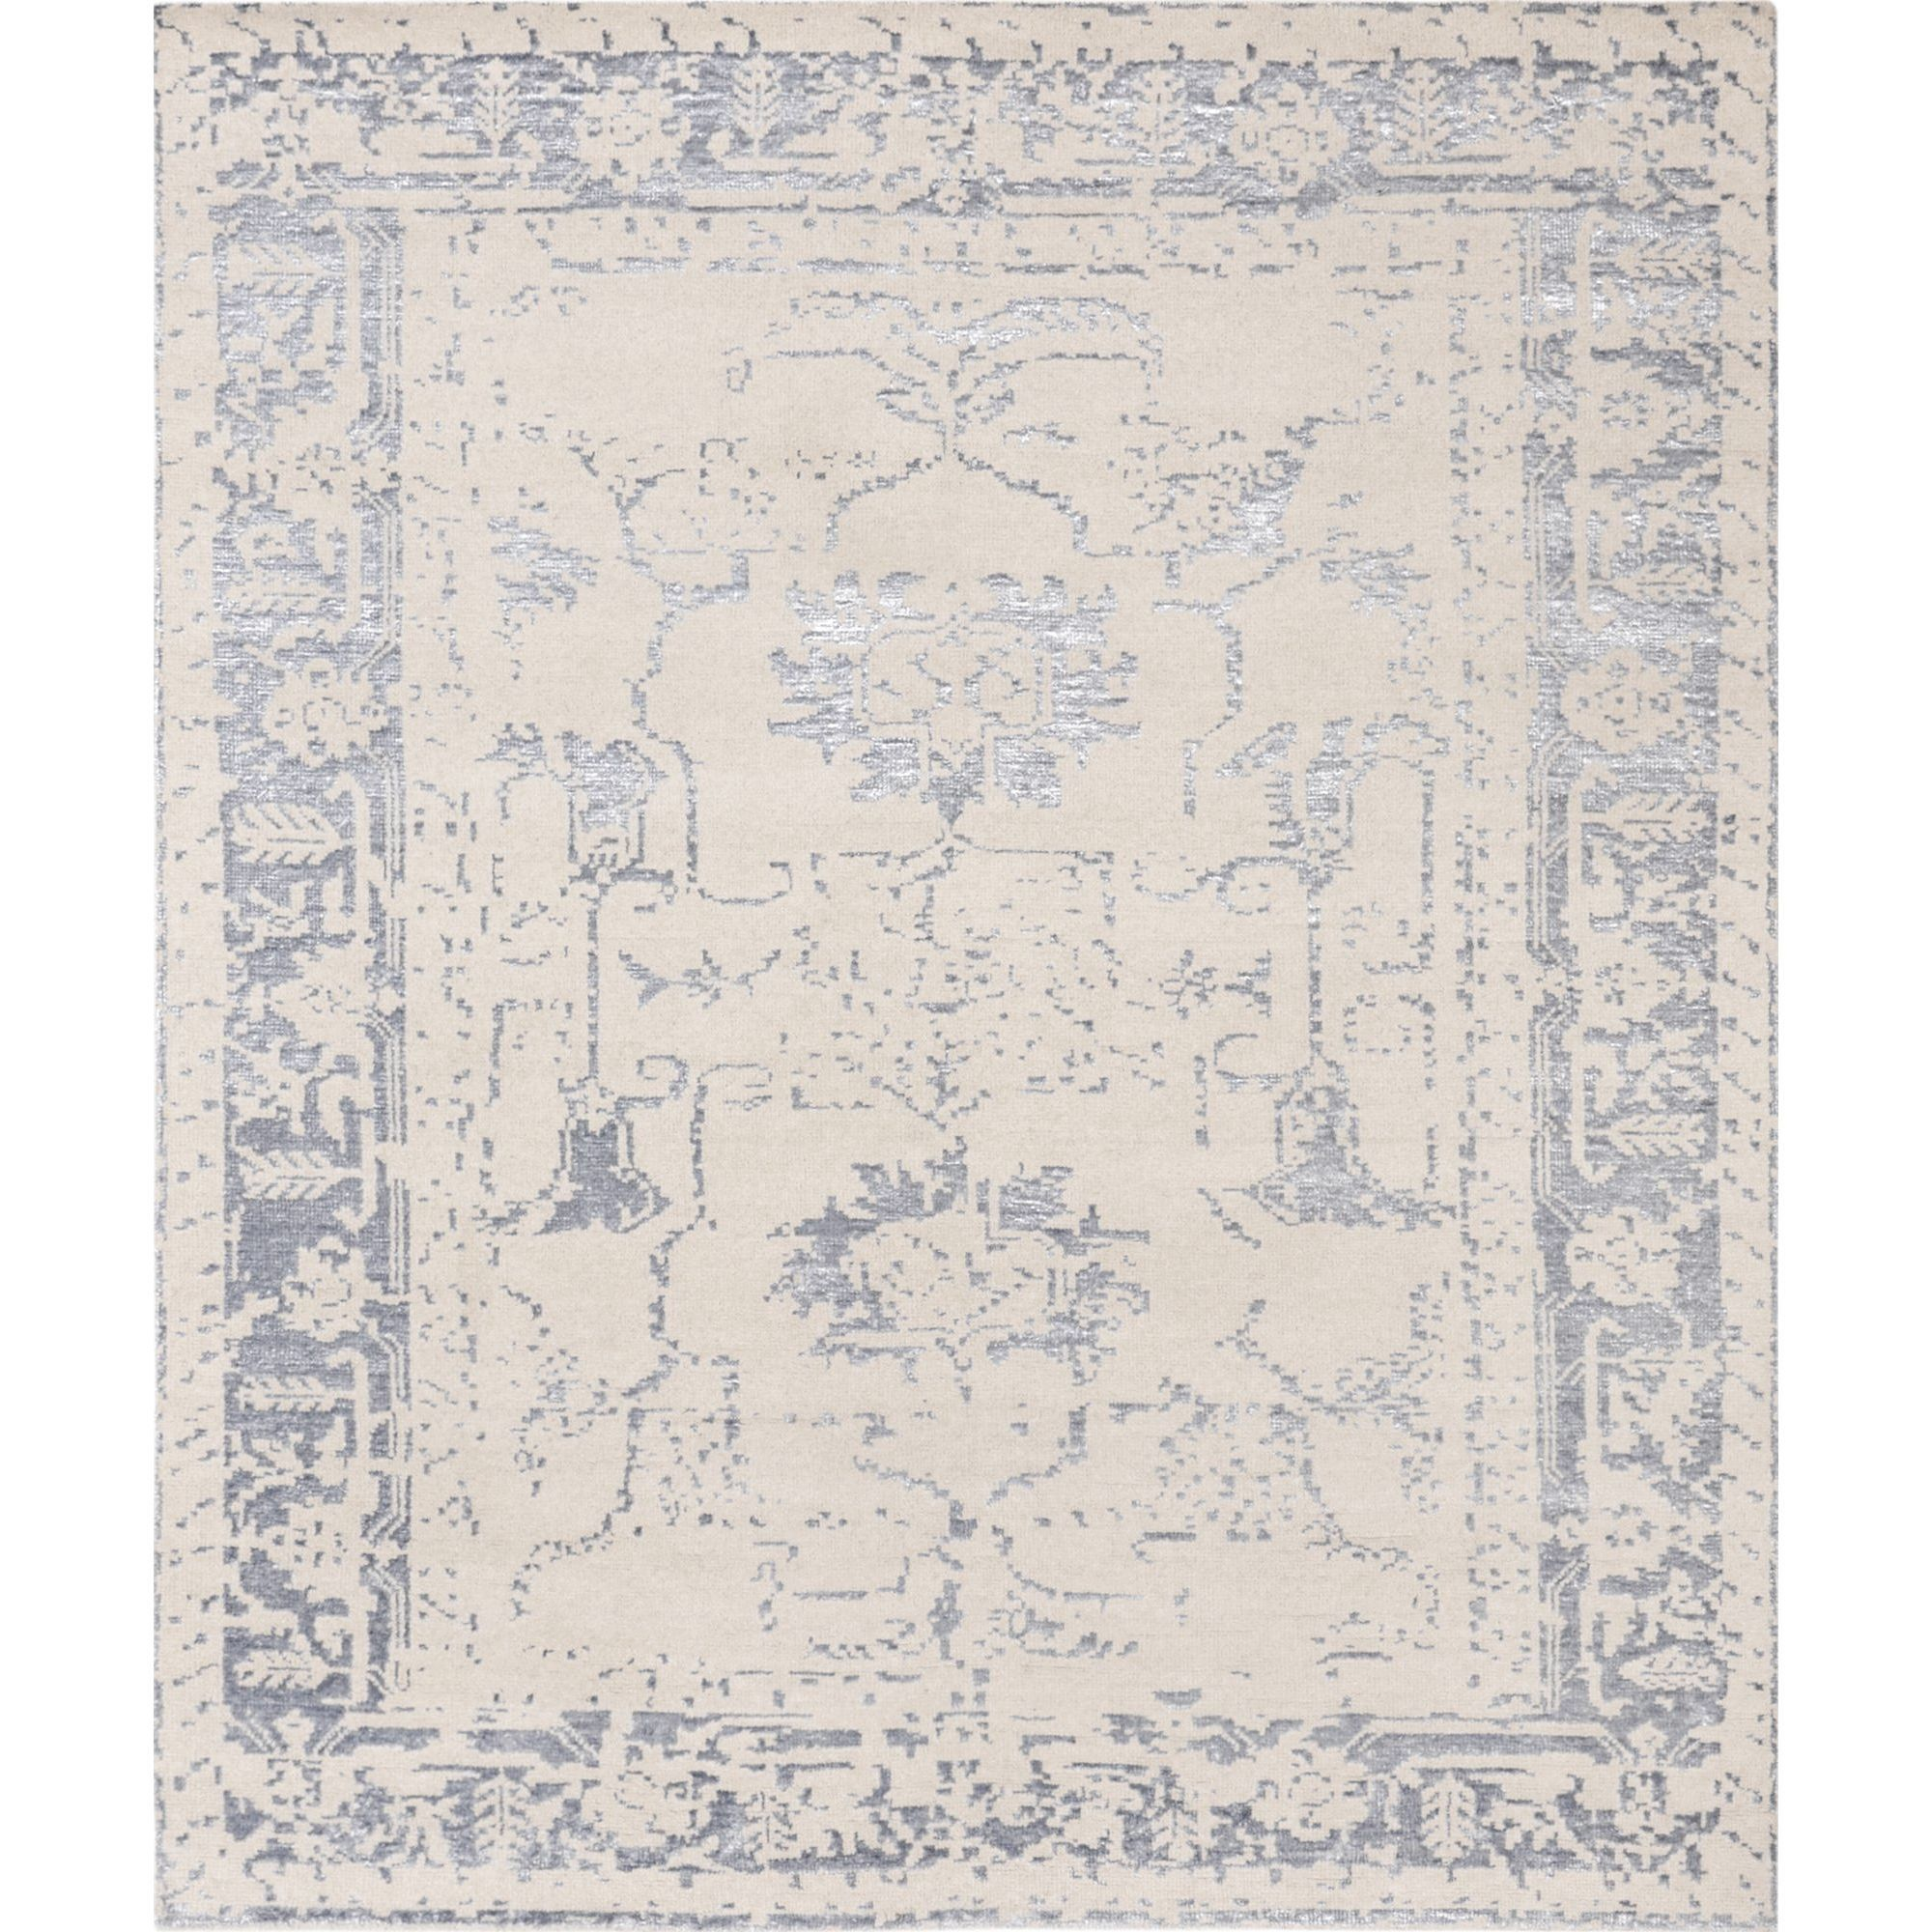 Pasargad's Silk Fusion Collection Hand-knotted Beige Viscose from Bamboo and Wool Area Rug (8' X 10') (8x10), Size 8' x 10'